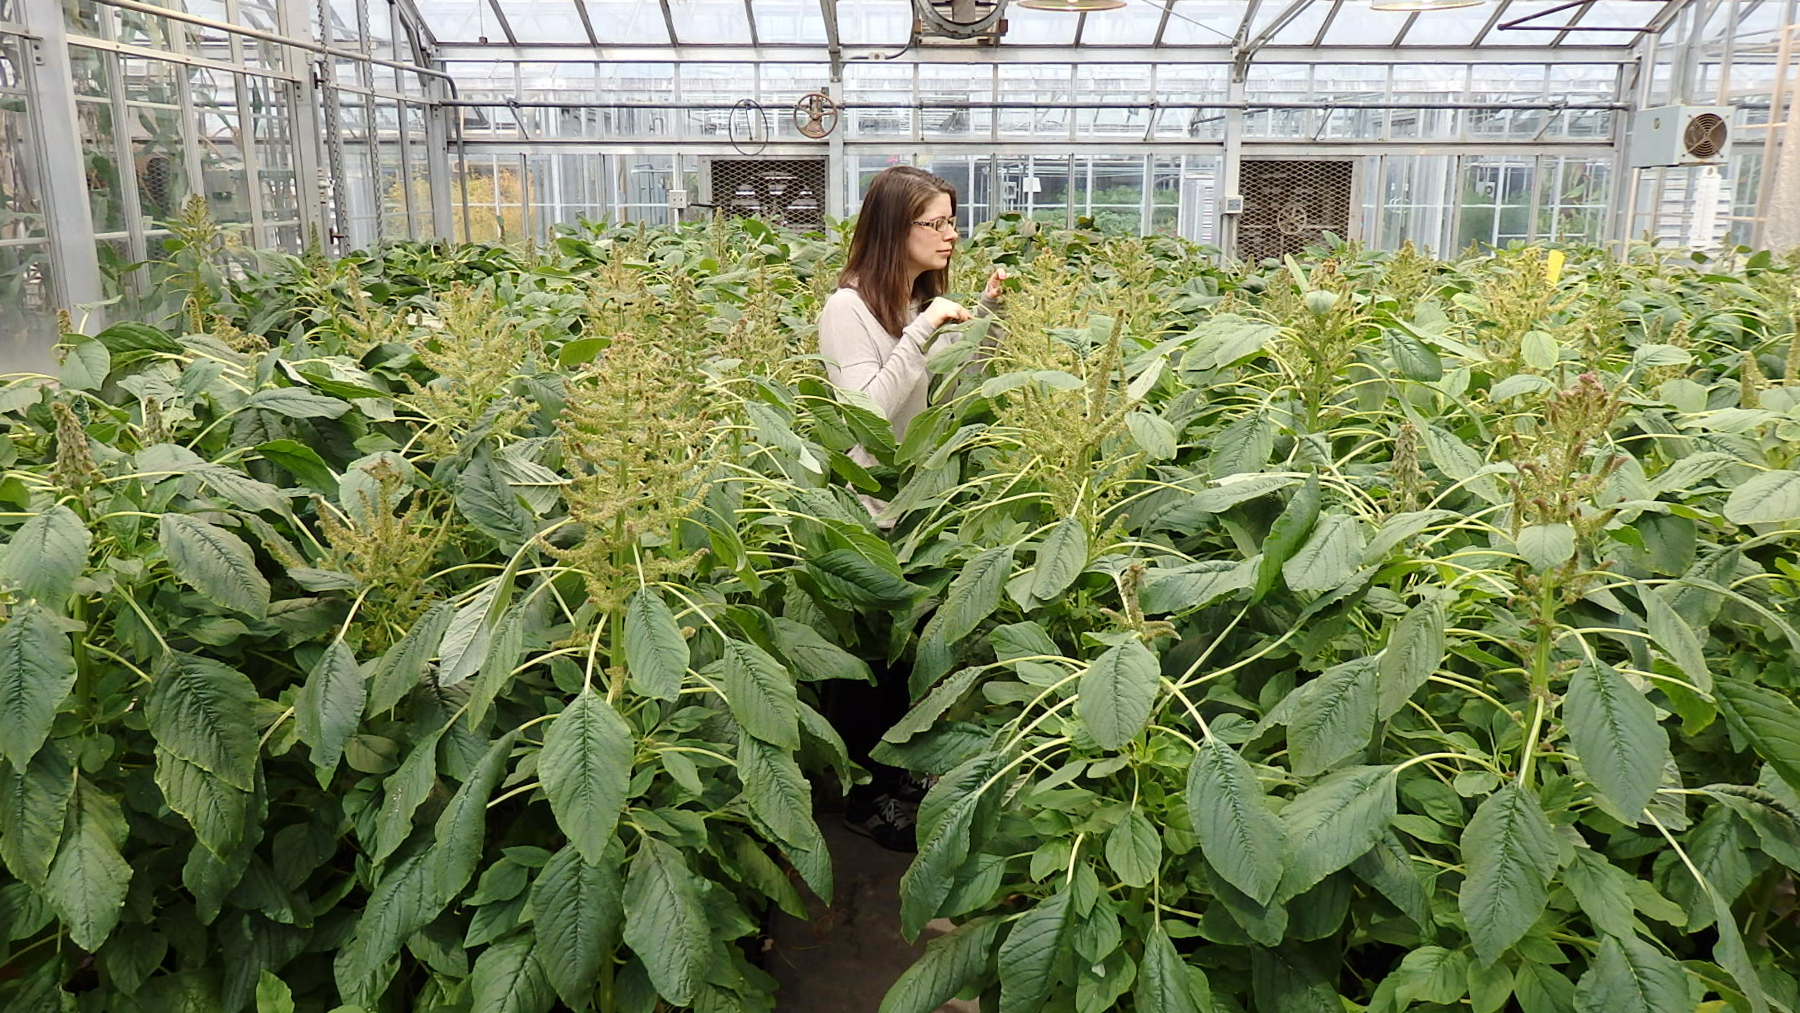 researcher in greenhouse surrounded by Amaranthus hypochondriacus weeds